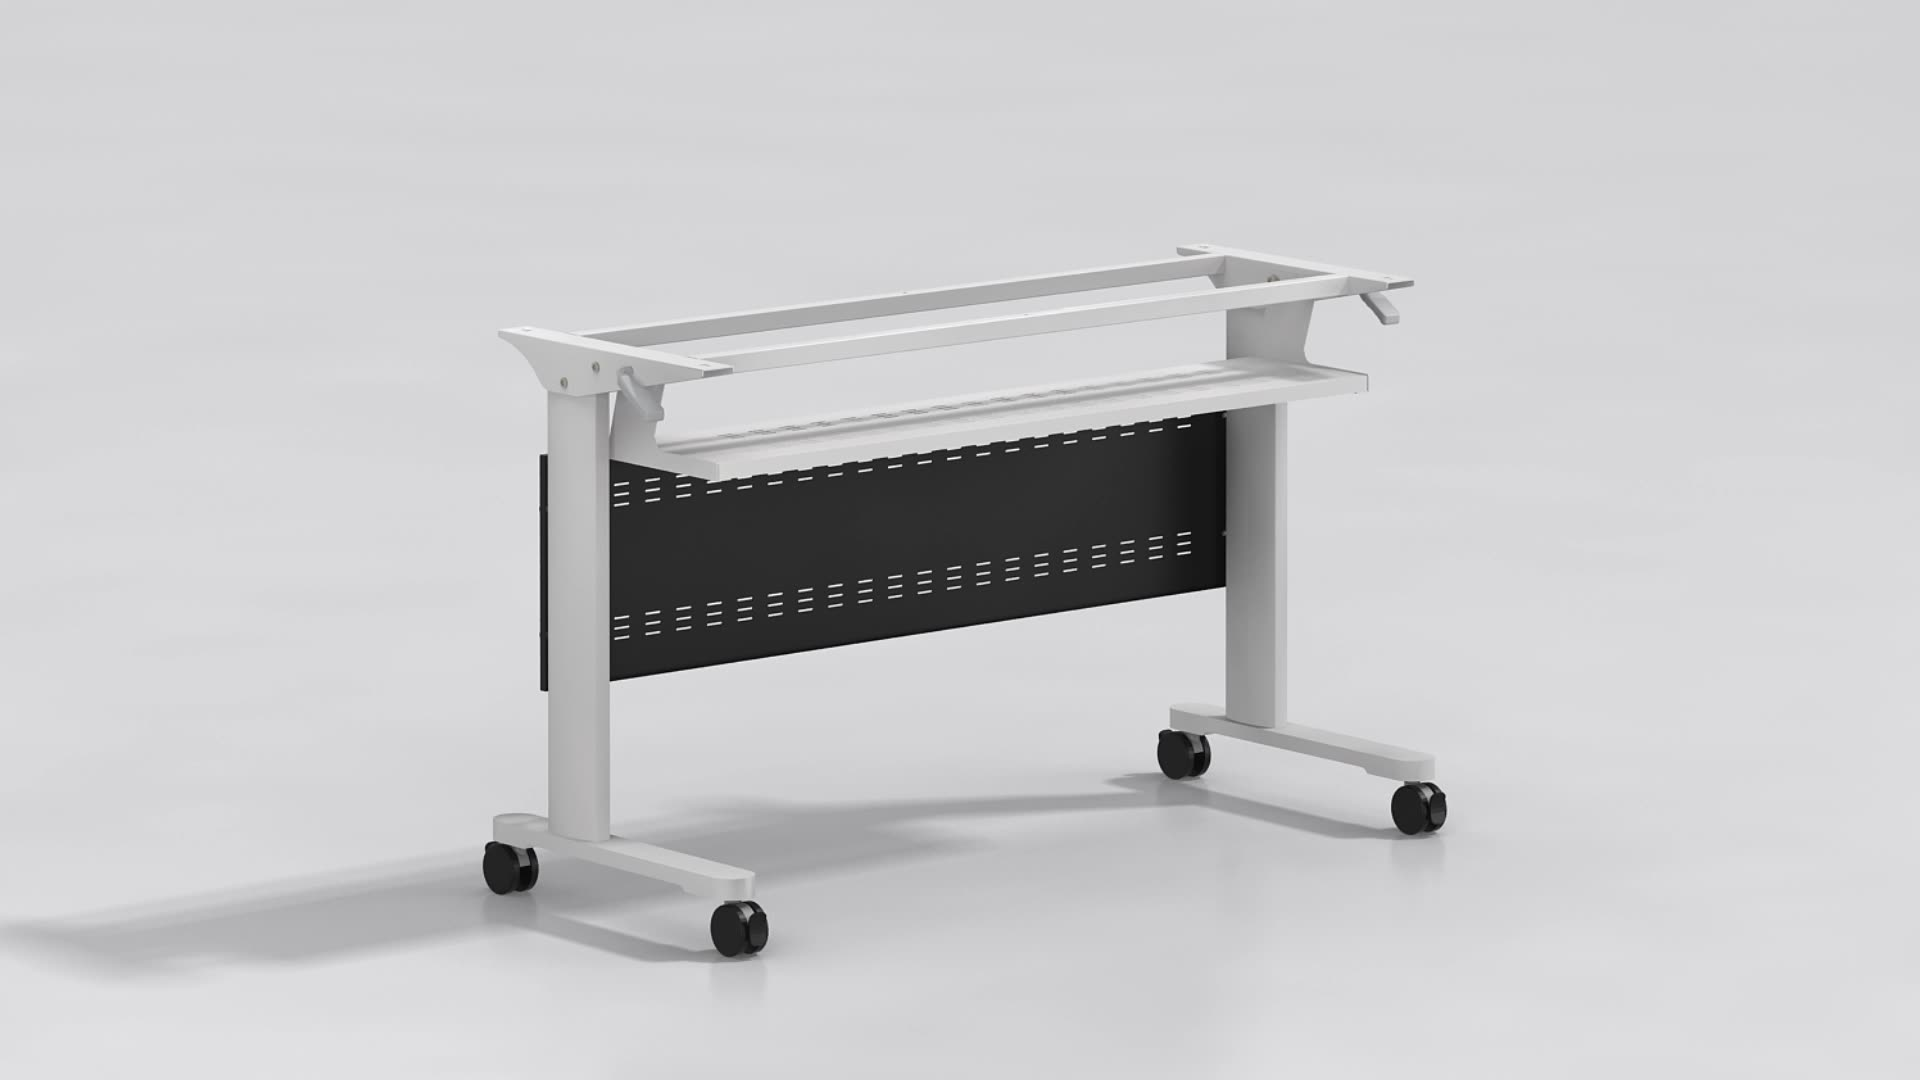 Greatway modular office folding training table foldable metal conference desk steel meeting table frame